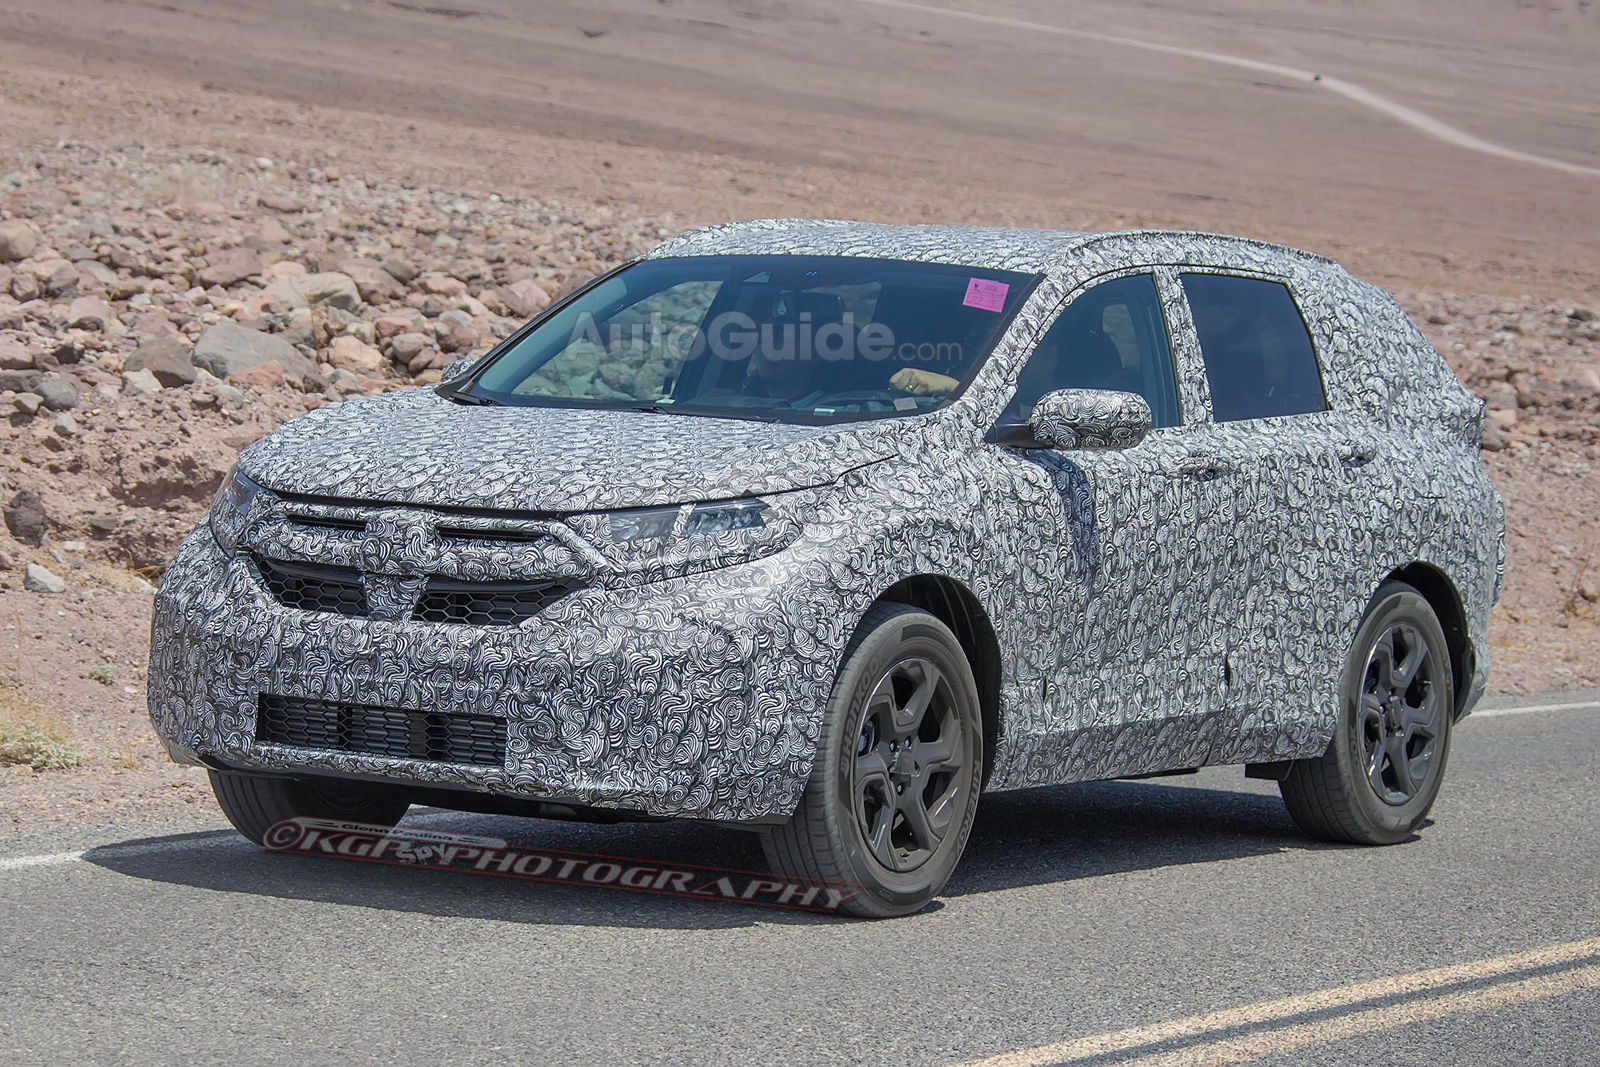 2018 honda cr v spied for the first time with pilot inspired design news. Black Bedroom Furniture Sets. Home Design Ideas